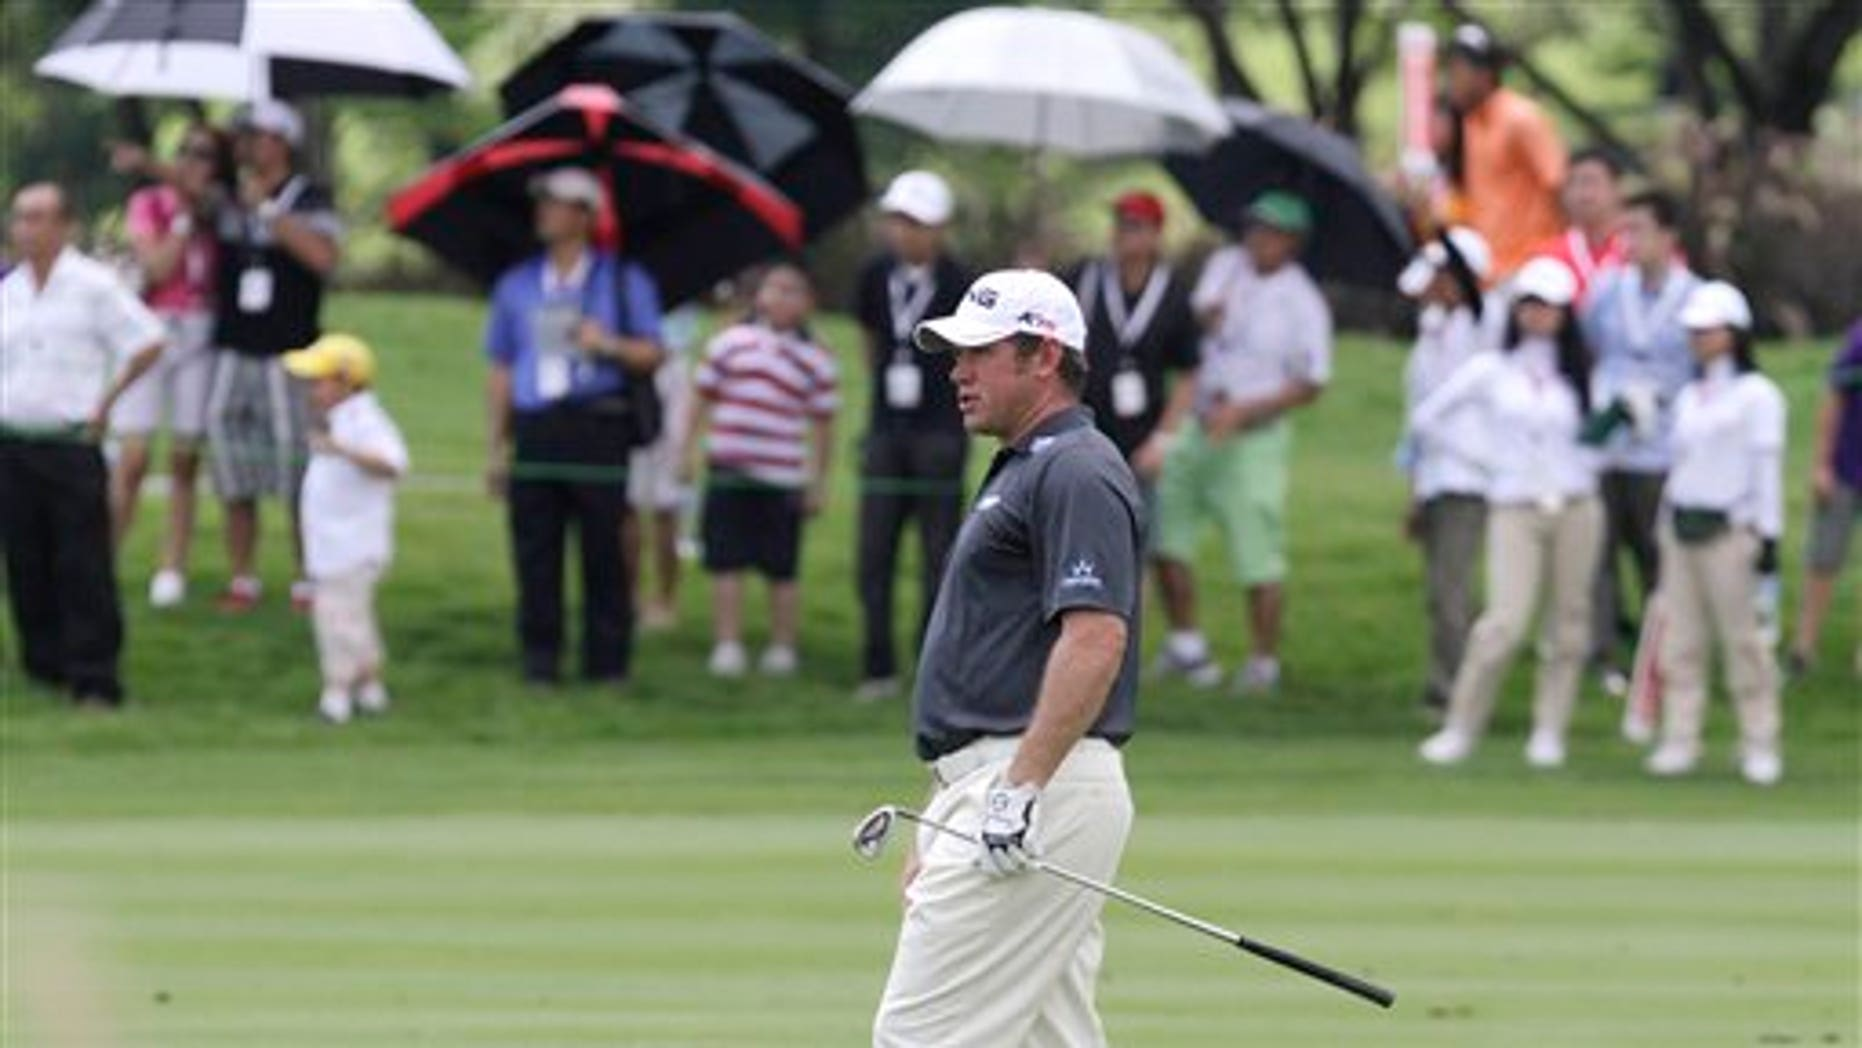 April 23, 2011: Lee Westwood of England watches his shot during the third round of the Indonesian Masters golf tournament at Royale Golf Club in Jakarta, Indonesia.